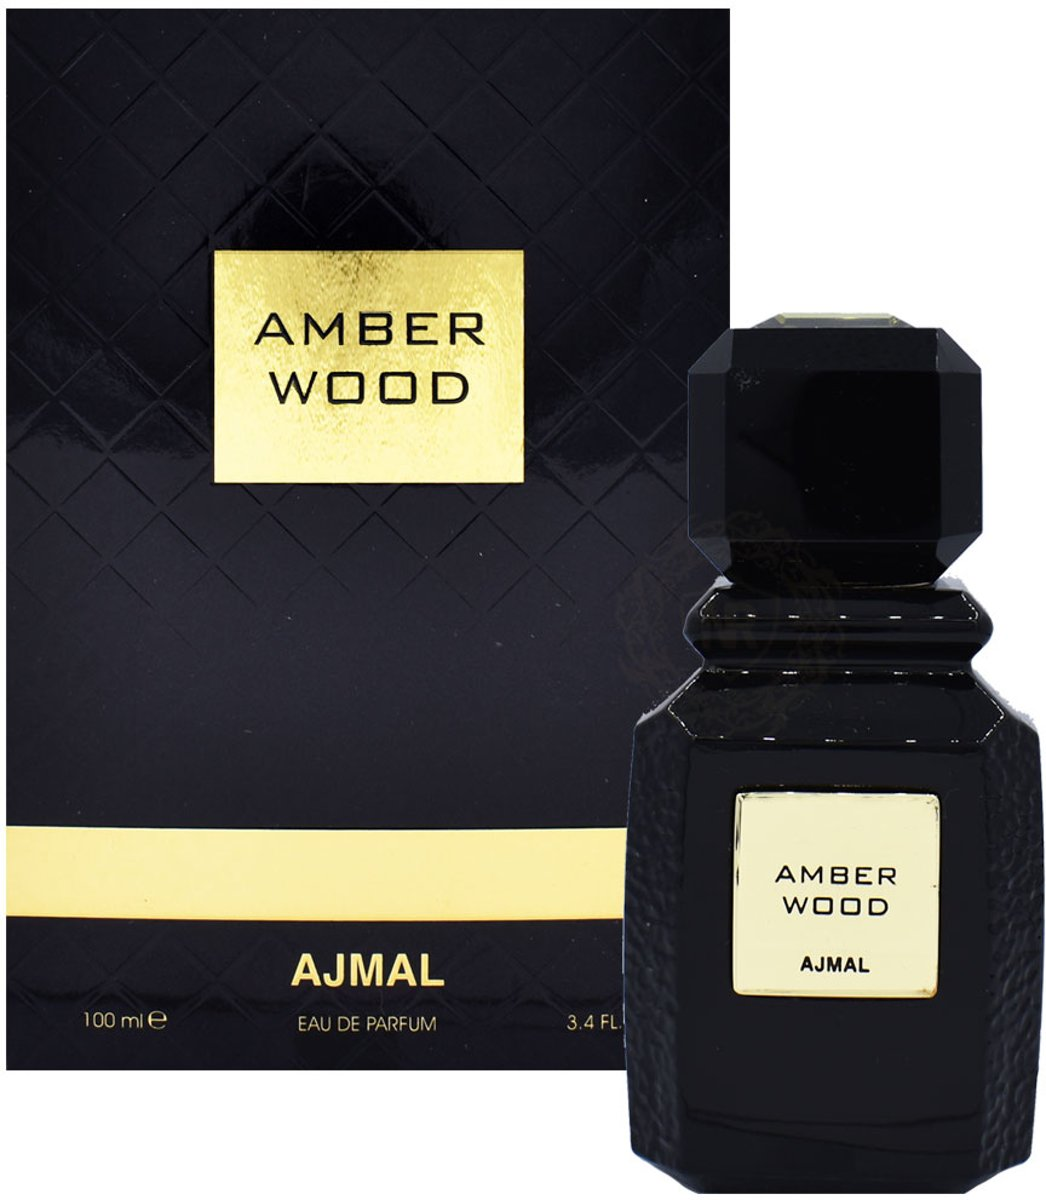 Ajmal Amber Wood edp 100ml